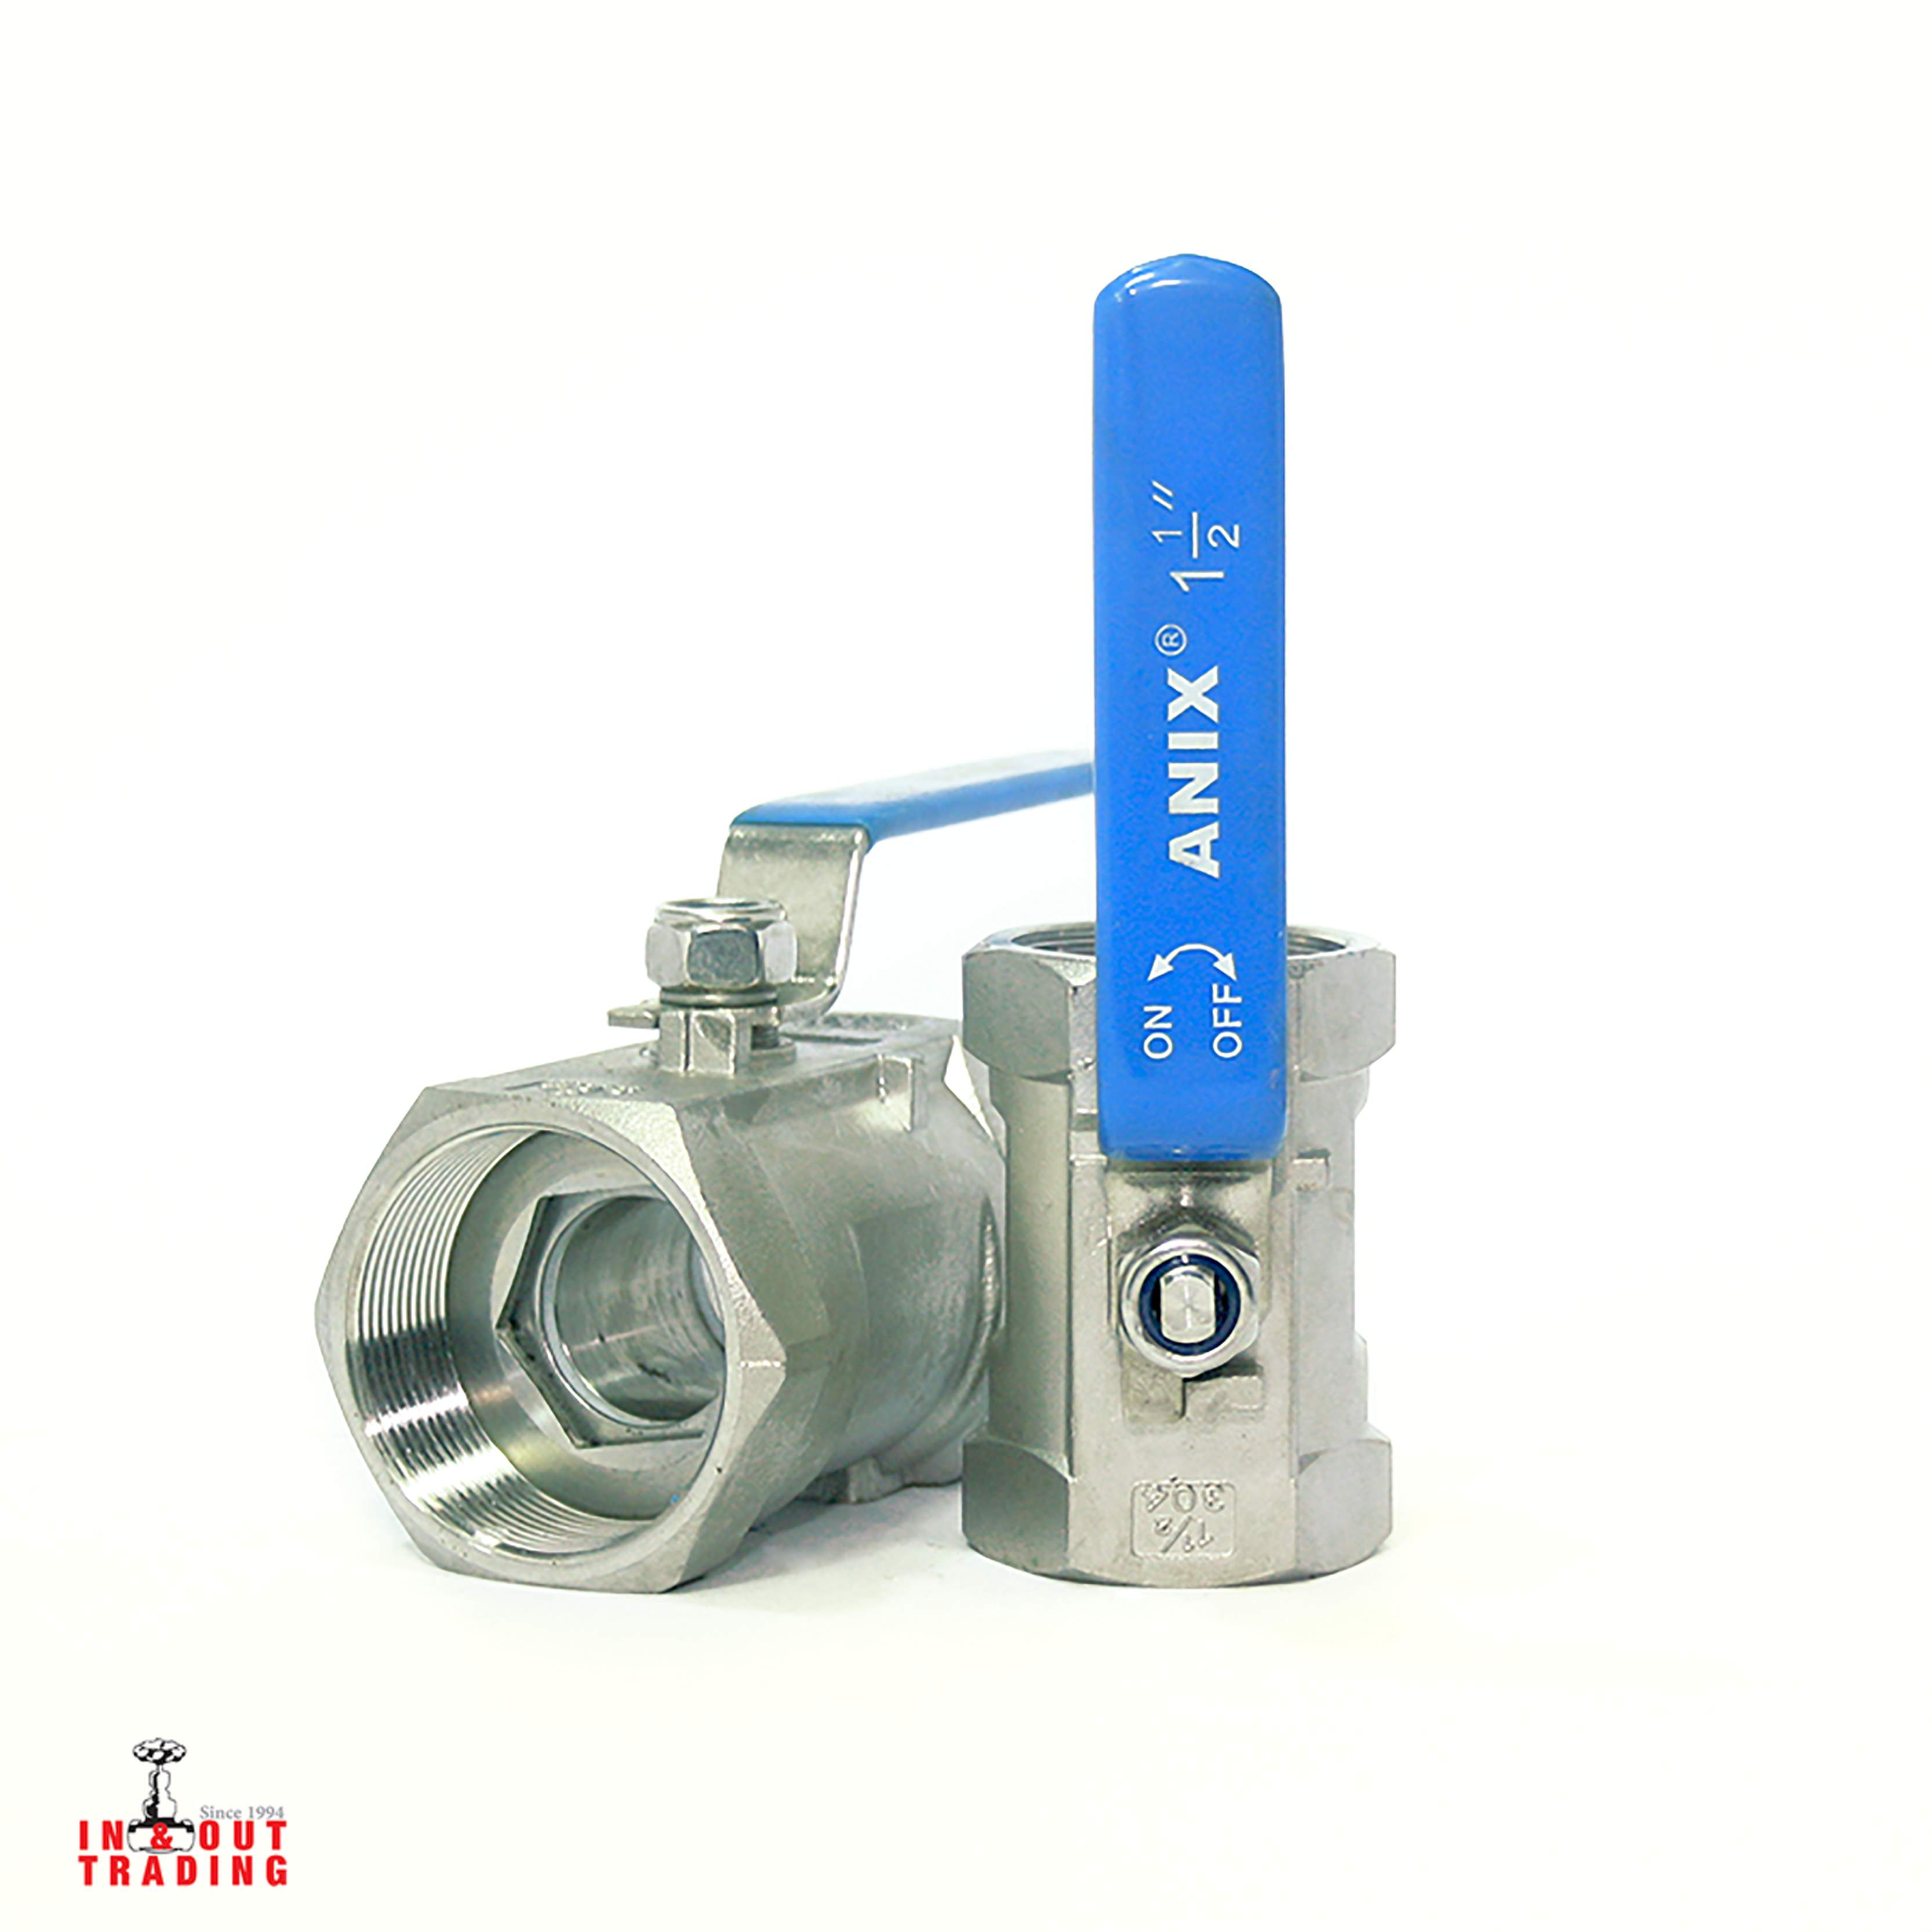 'ANIX 1PC SS304 BALL VALVE PN64'